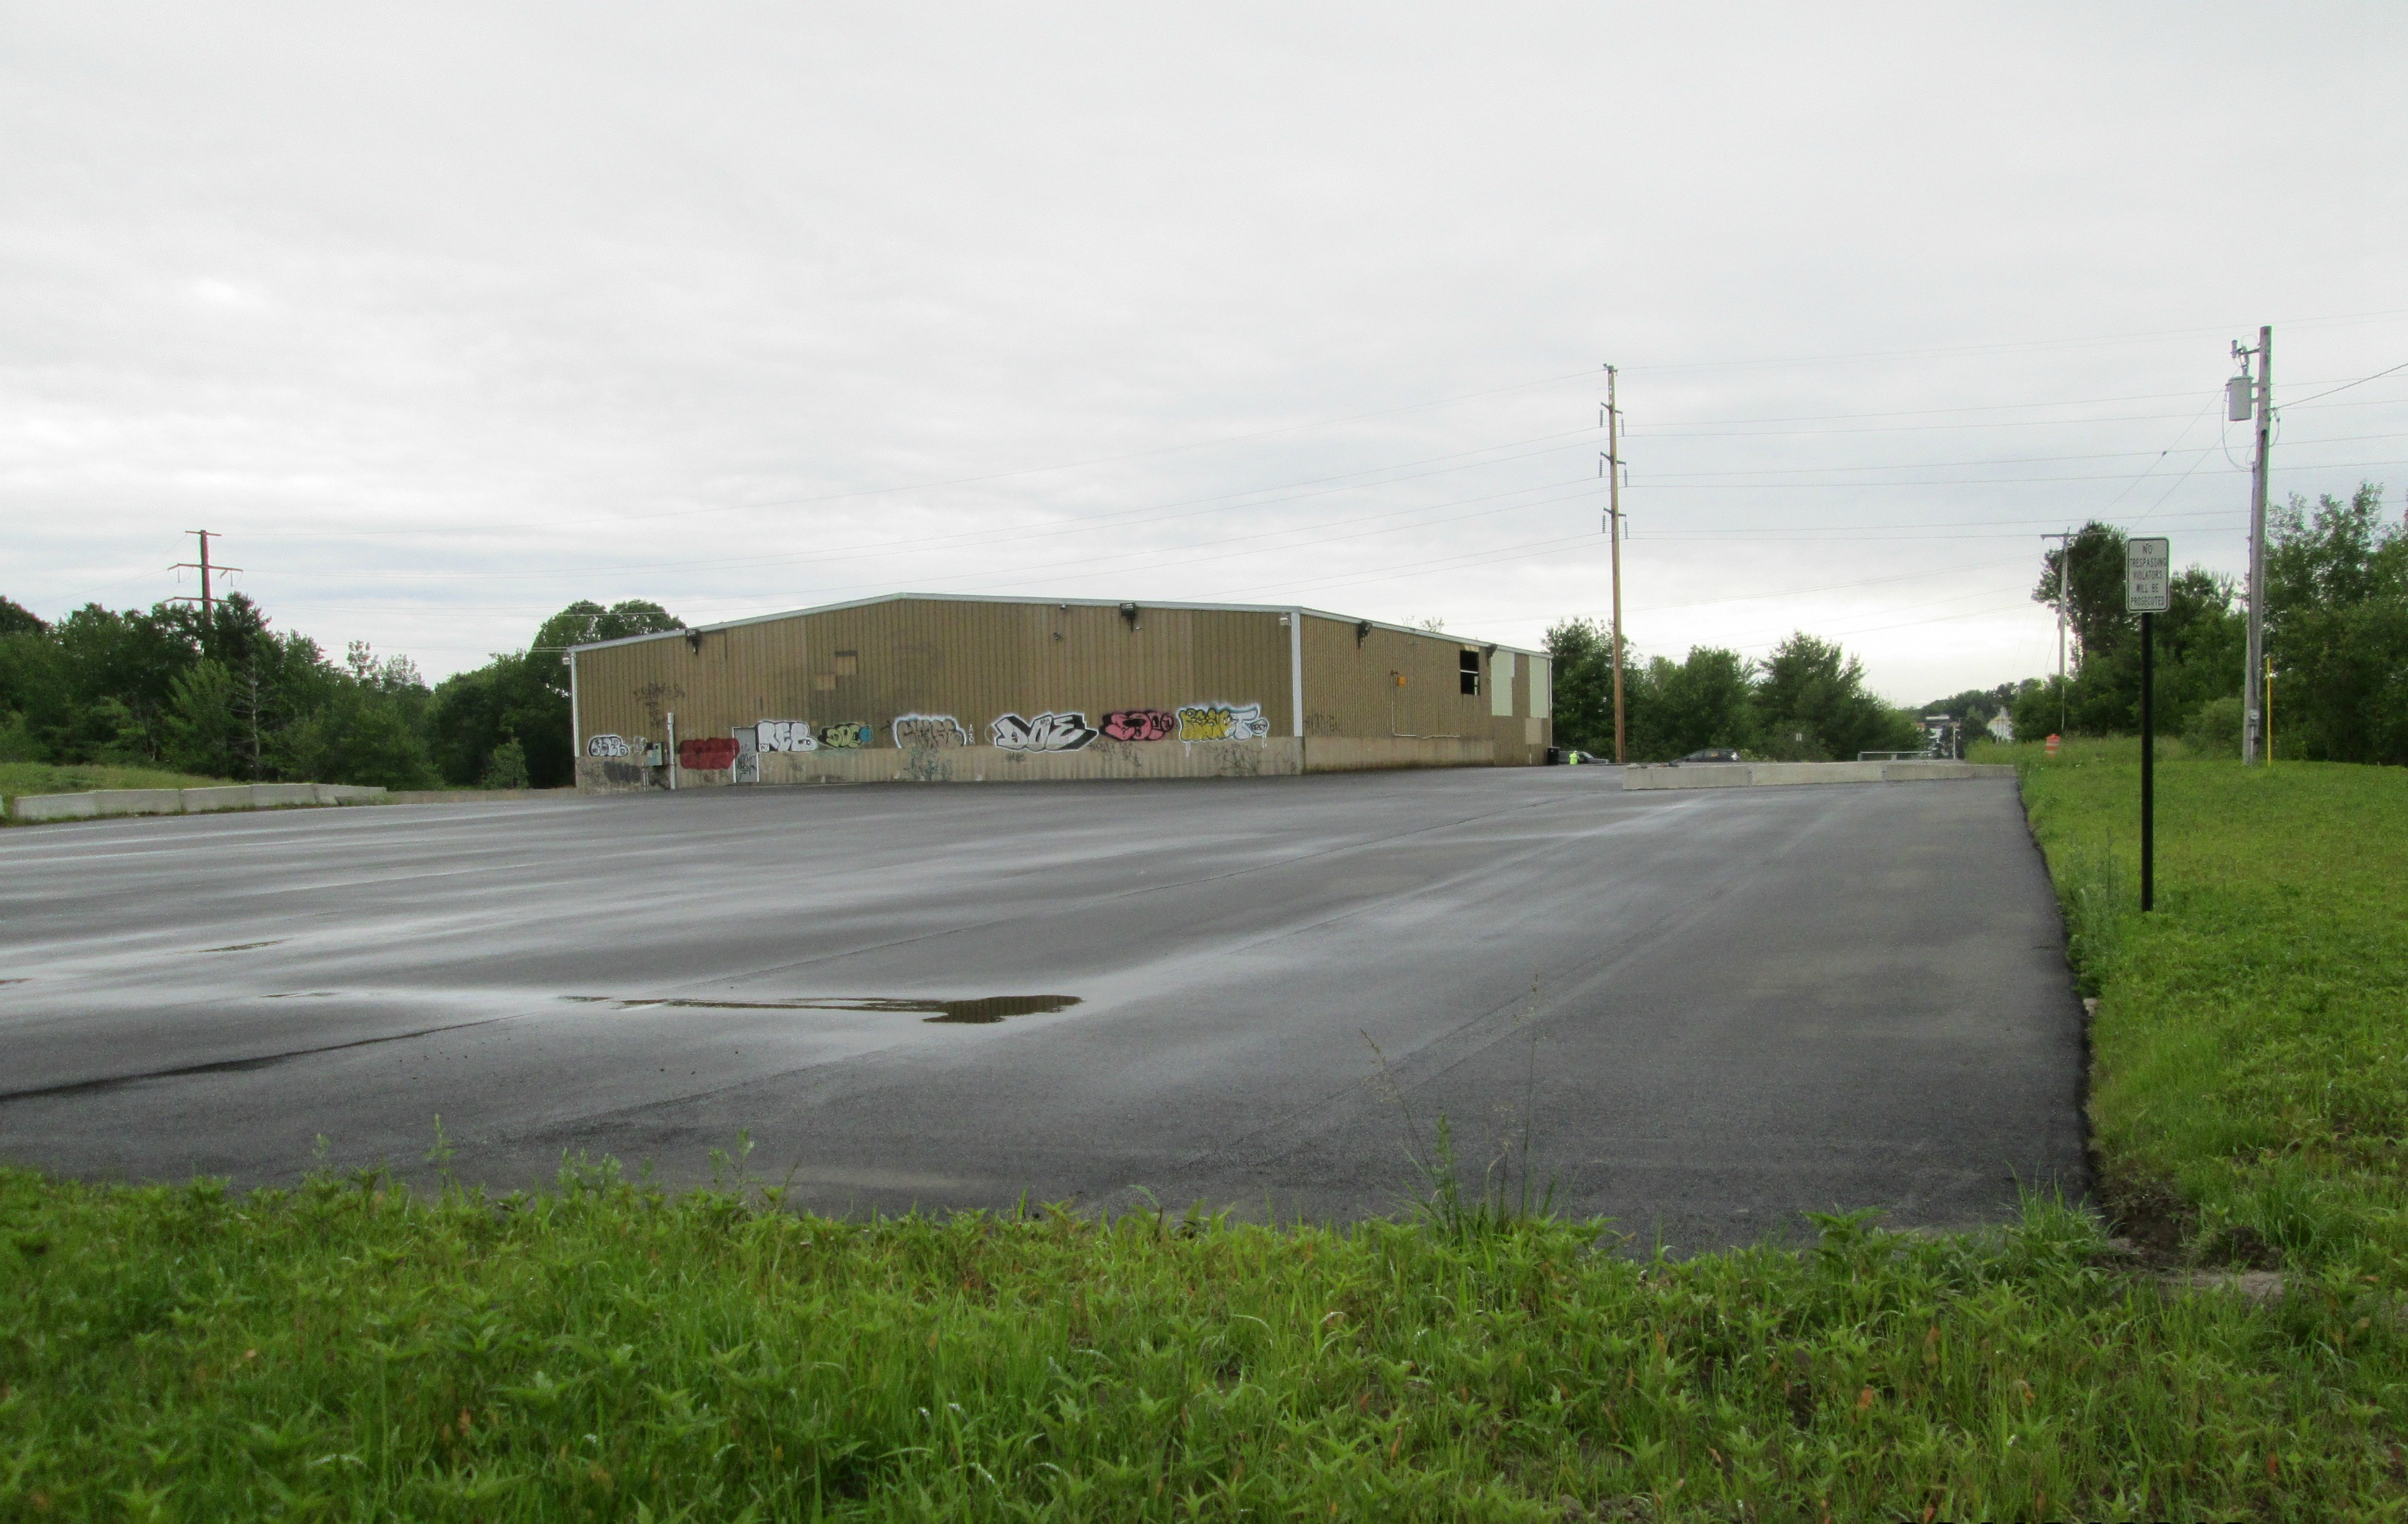 vacant industrial building and parking lot